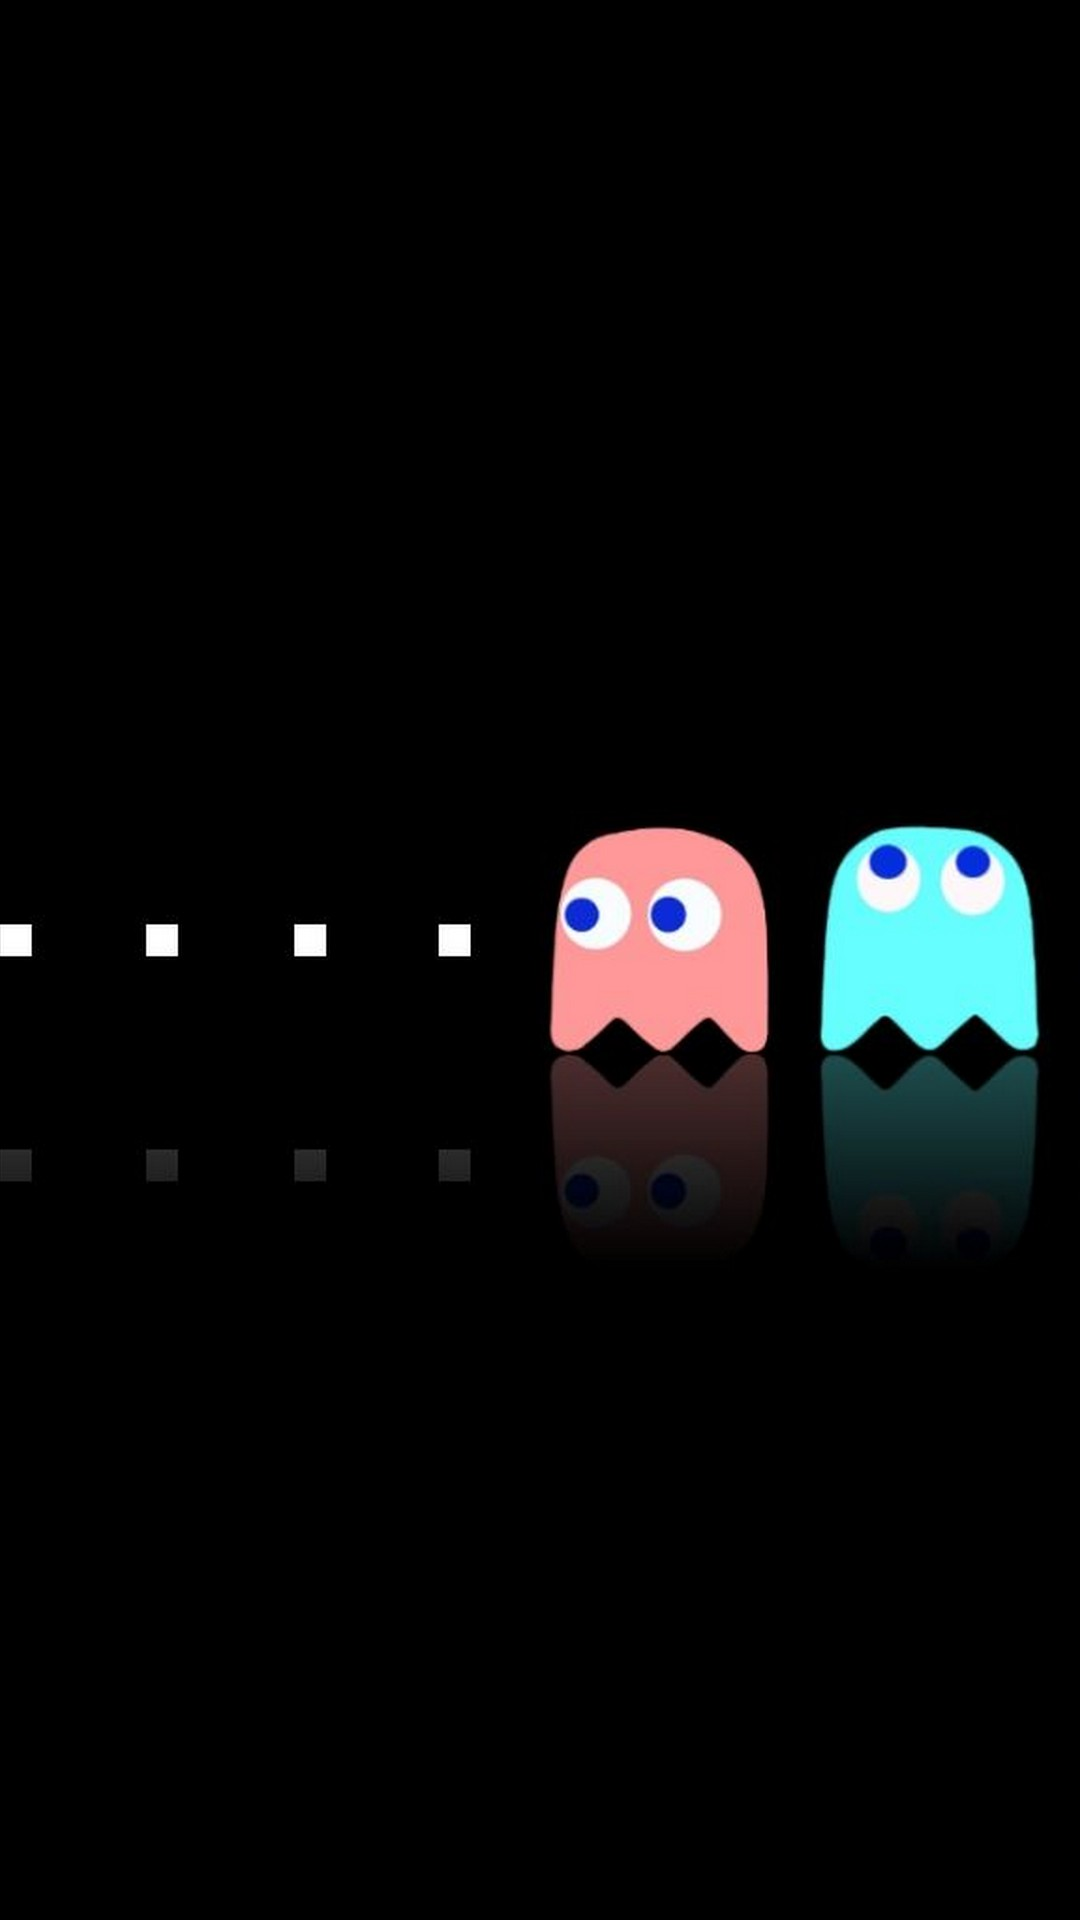 Video Game Wallpapers For Android Posted By Christopher Thompson